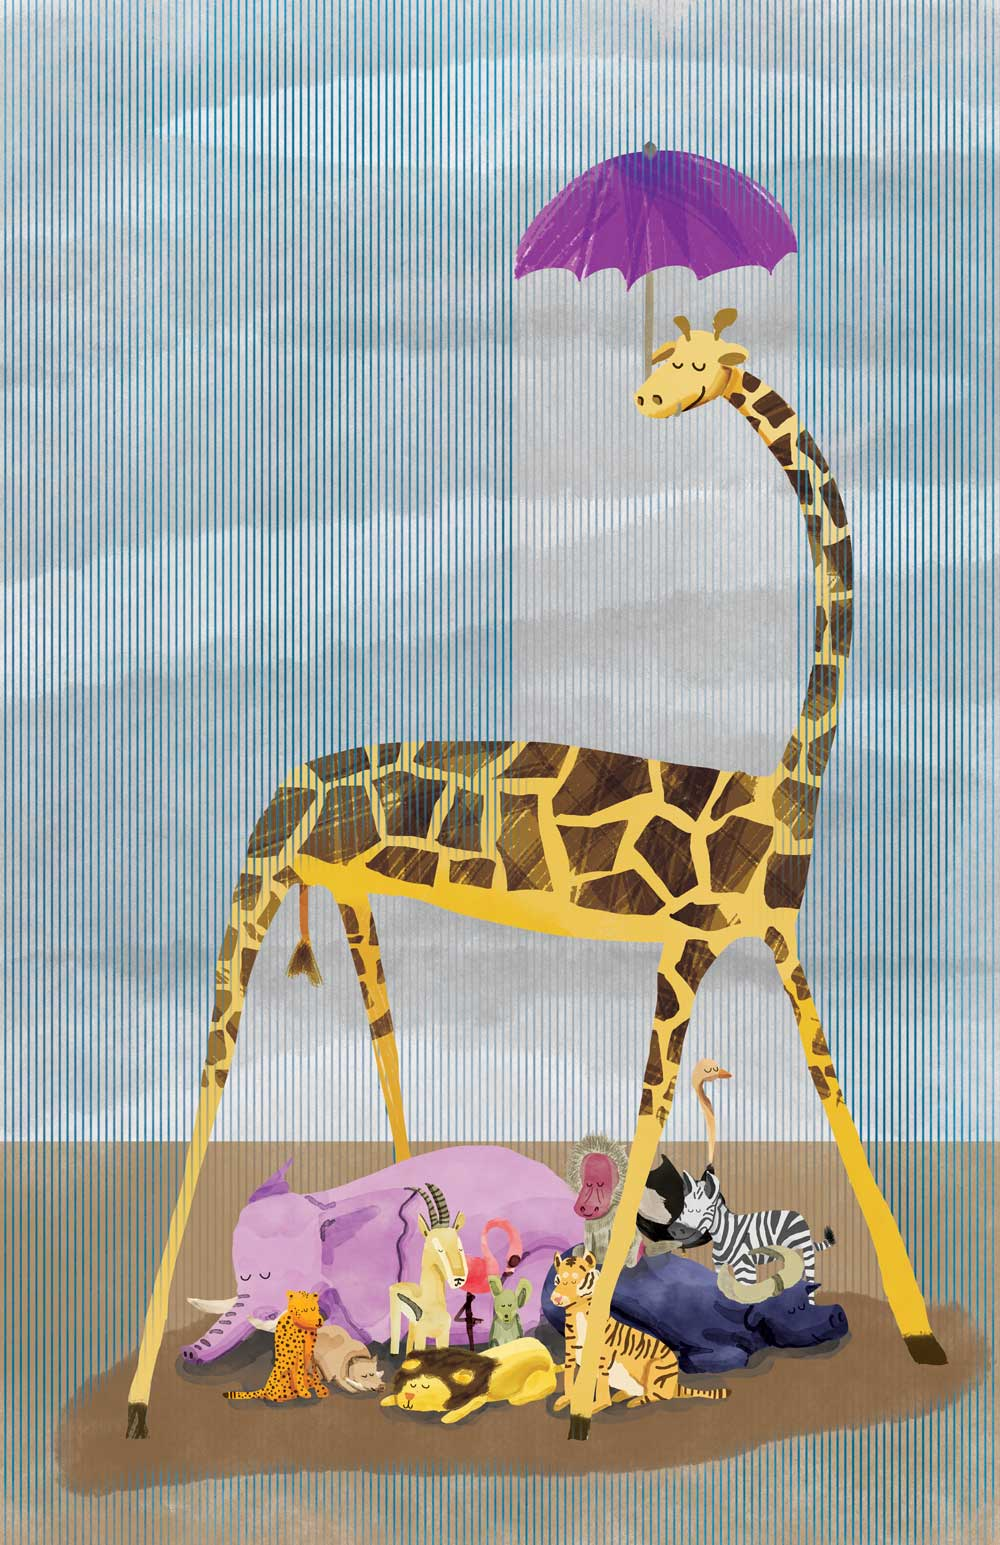 Giraffe and His Friends , 2015